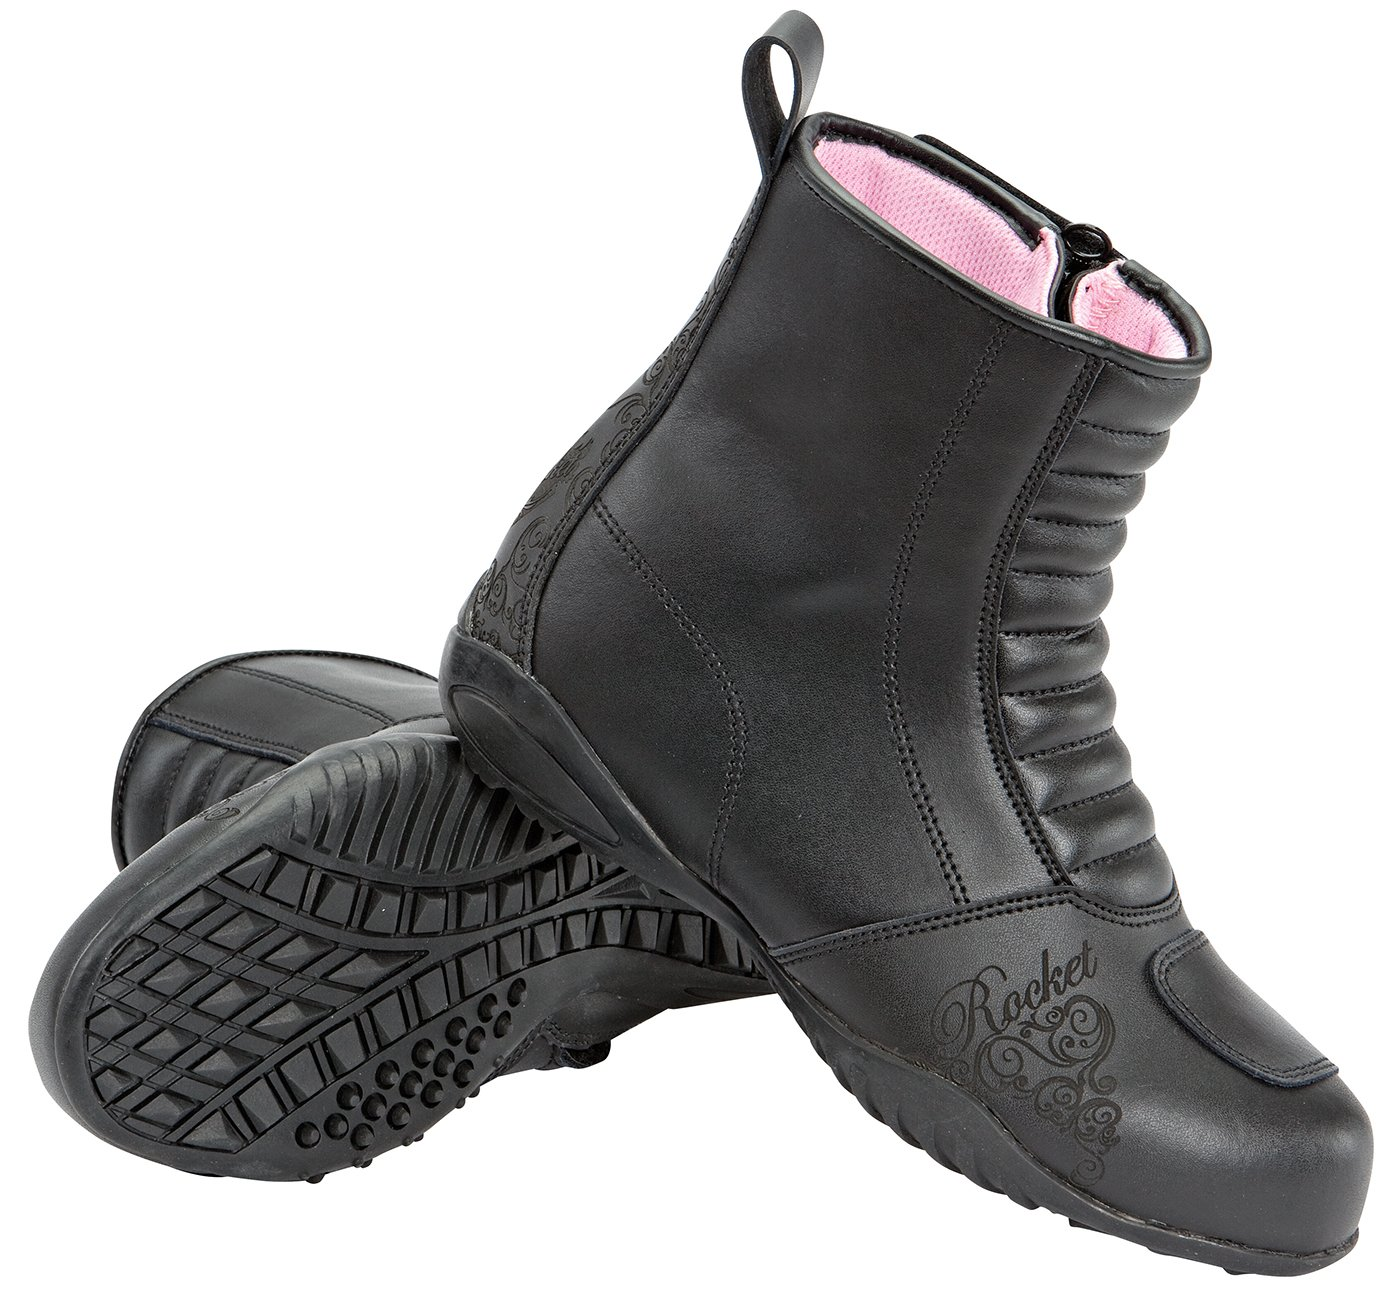 Joe Rocket Women's Trixie Boots (Black, Size 9) B00ESCFOY8 Size 9